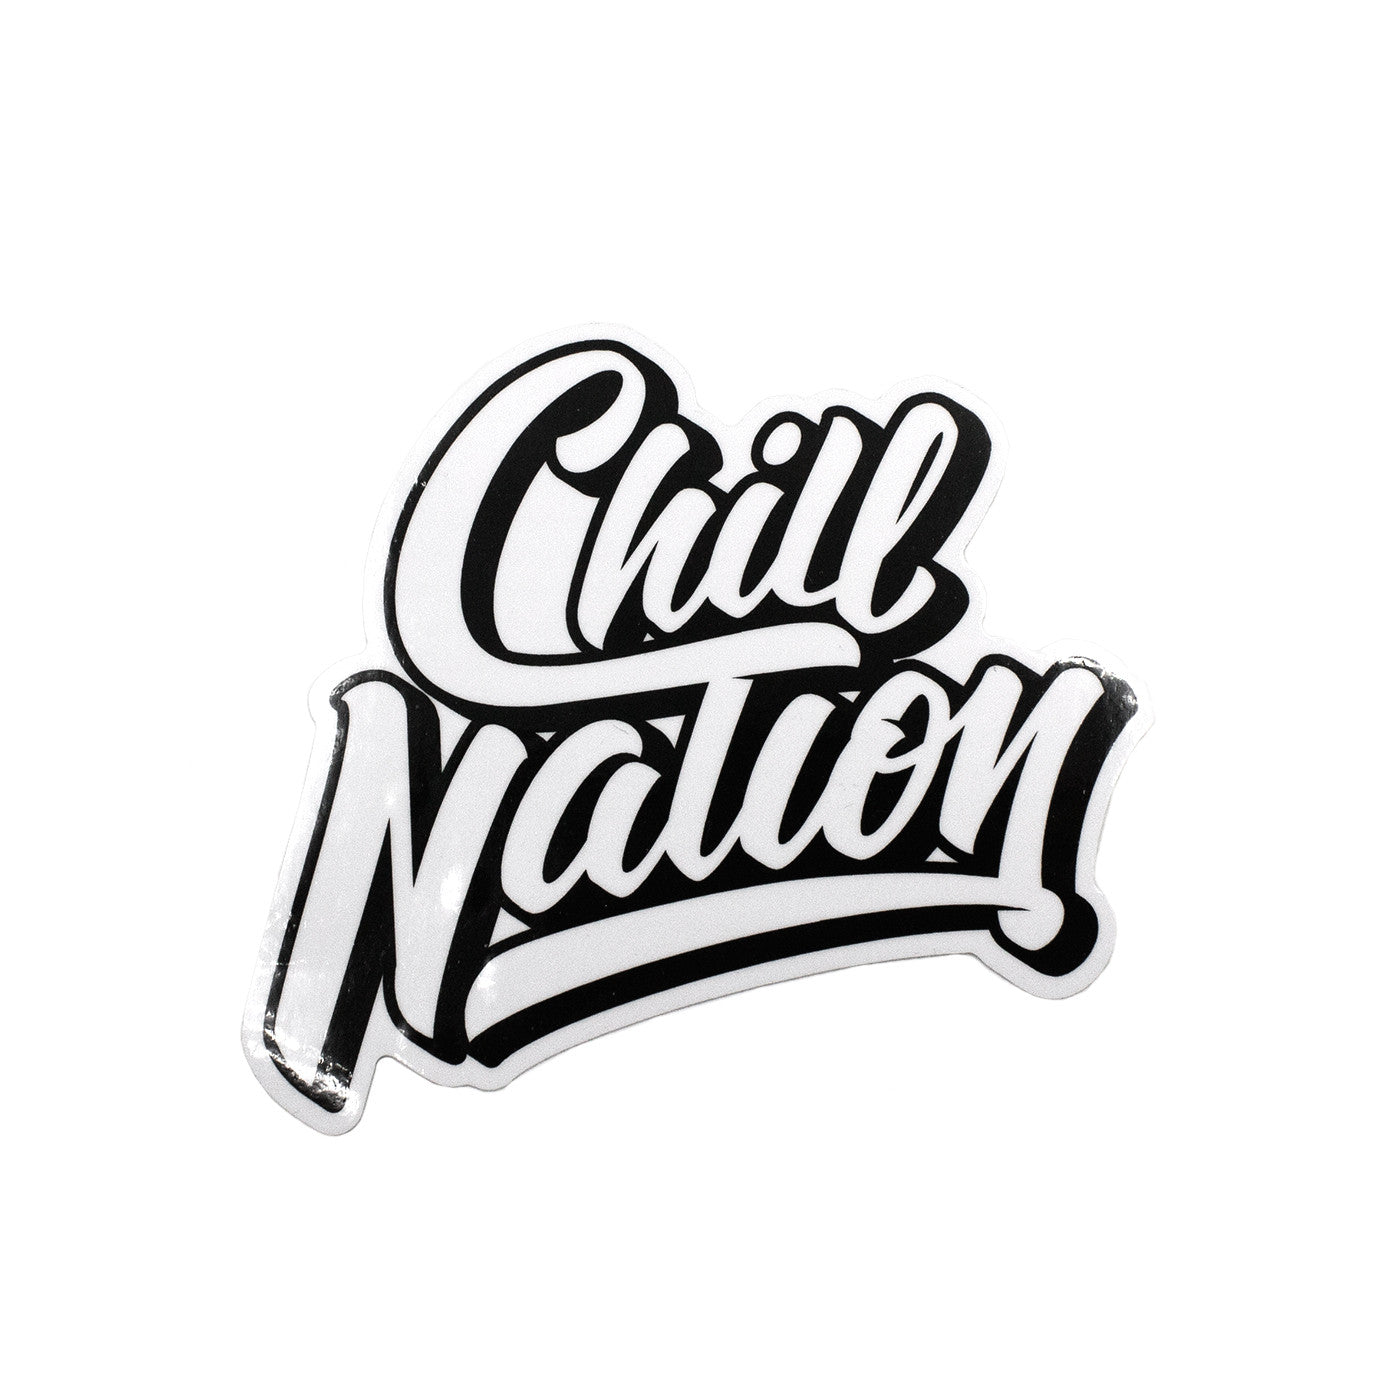 chill nation sticker � the nations